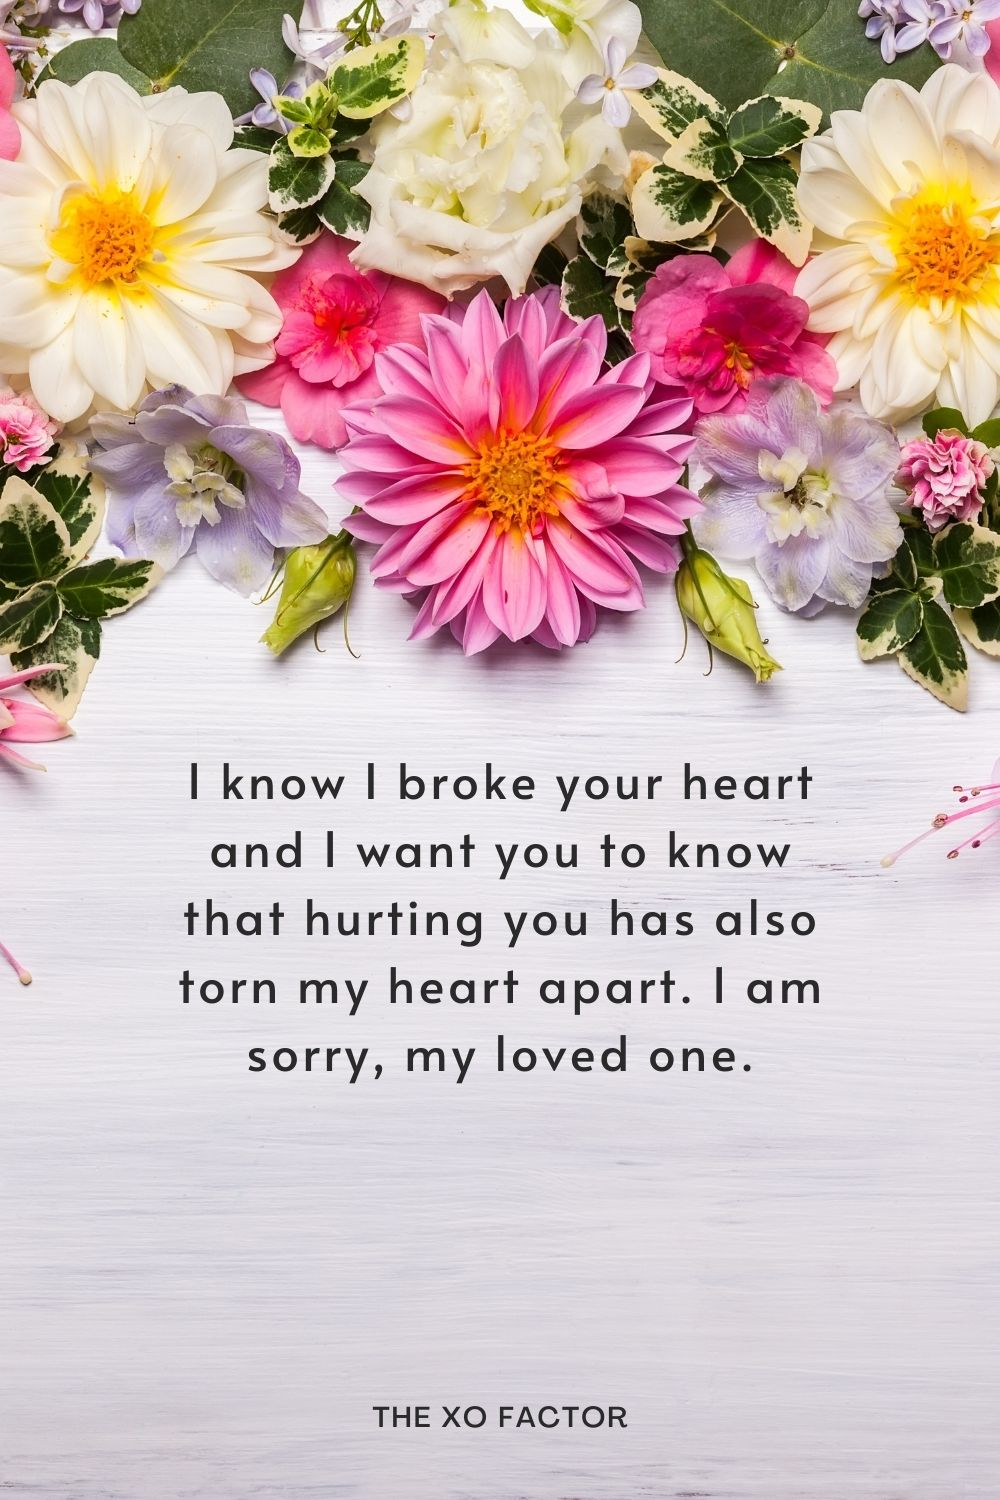 I know I broke your heart and I want you to know that hurting you has also torn my heart apart. I am sorry, my loved one.